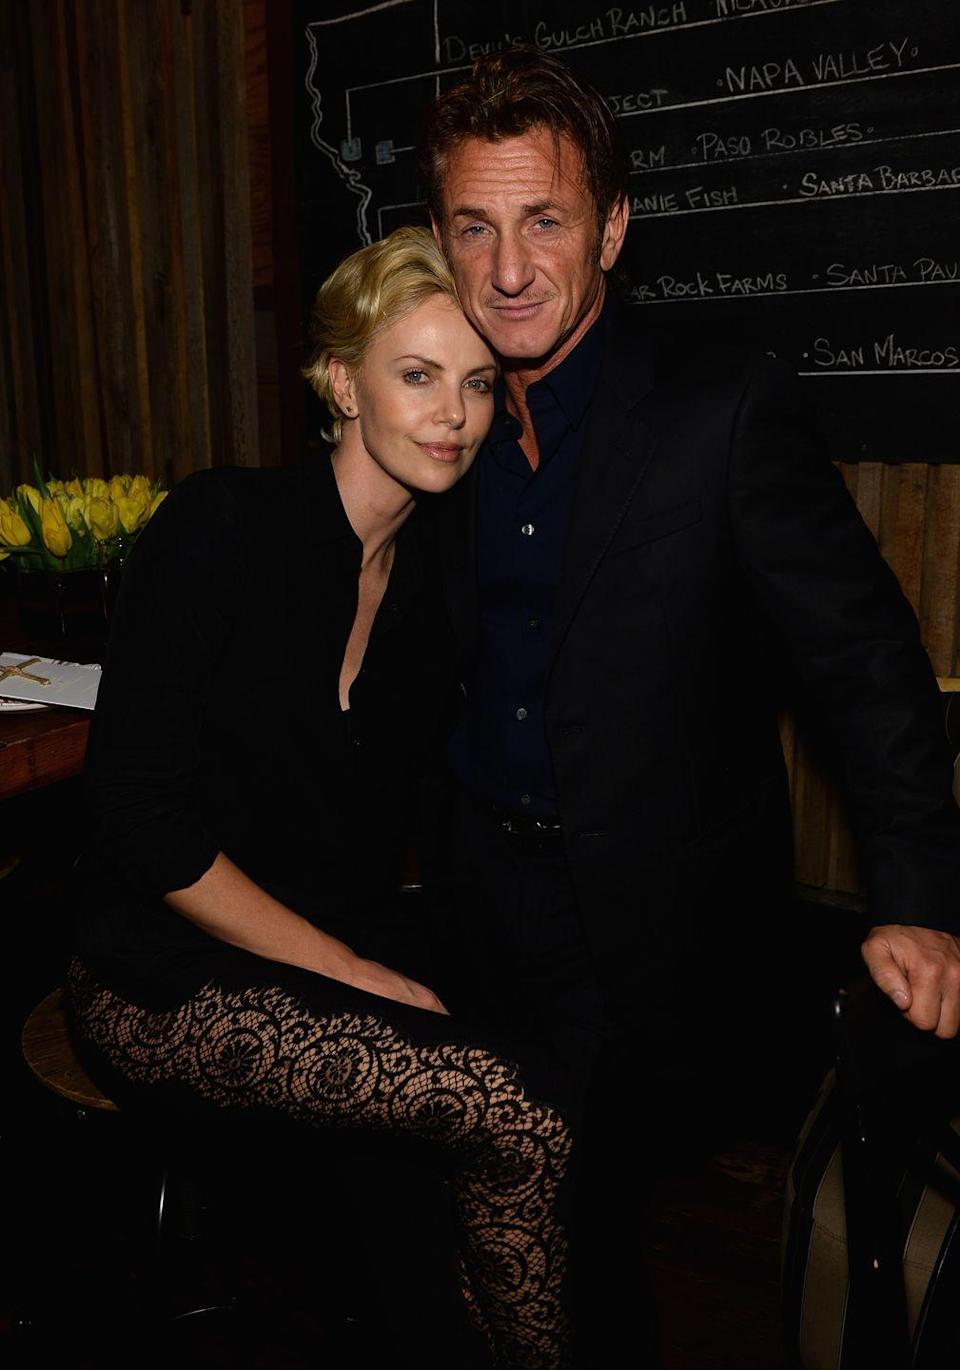 "<p>Theron starred in the Penn-directed movie <em>The Last Face</em>, and the two were even rumored to be engaged before the actress called it quits (allegedly by <a href=""http://jezebel.com/charlize-theron-broke-up-with-sean-penn-by-ghosting-him-1712760688"" rel=""nofollow noopener"" target=""_blank"" data-ylk=""slk:&quot;ghosting&quot;"" class=""link rapid-noclick-resp"">""ghosting""</a> him) in June 2015. One year later, they had to <a href=""http://www.eonline.com/news/766623/charlize-theron-and-sean-penn-keep-their-distance-in-cannes-as-their-new-movie-gets-panned"" rel=""nofollow noopener"" target=""_blank"" data-ylk=""slk:reunite"" class=""link rapid-noclick-resp"">reunite</a> while doing press for the film at the 2016 Cannes Film Festival.</p>"